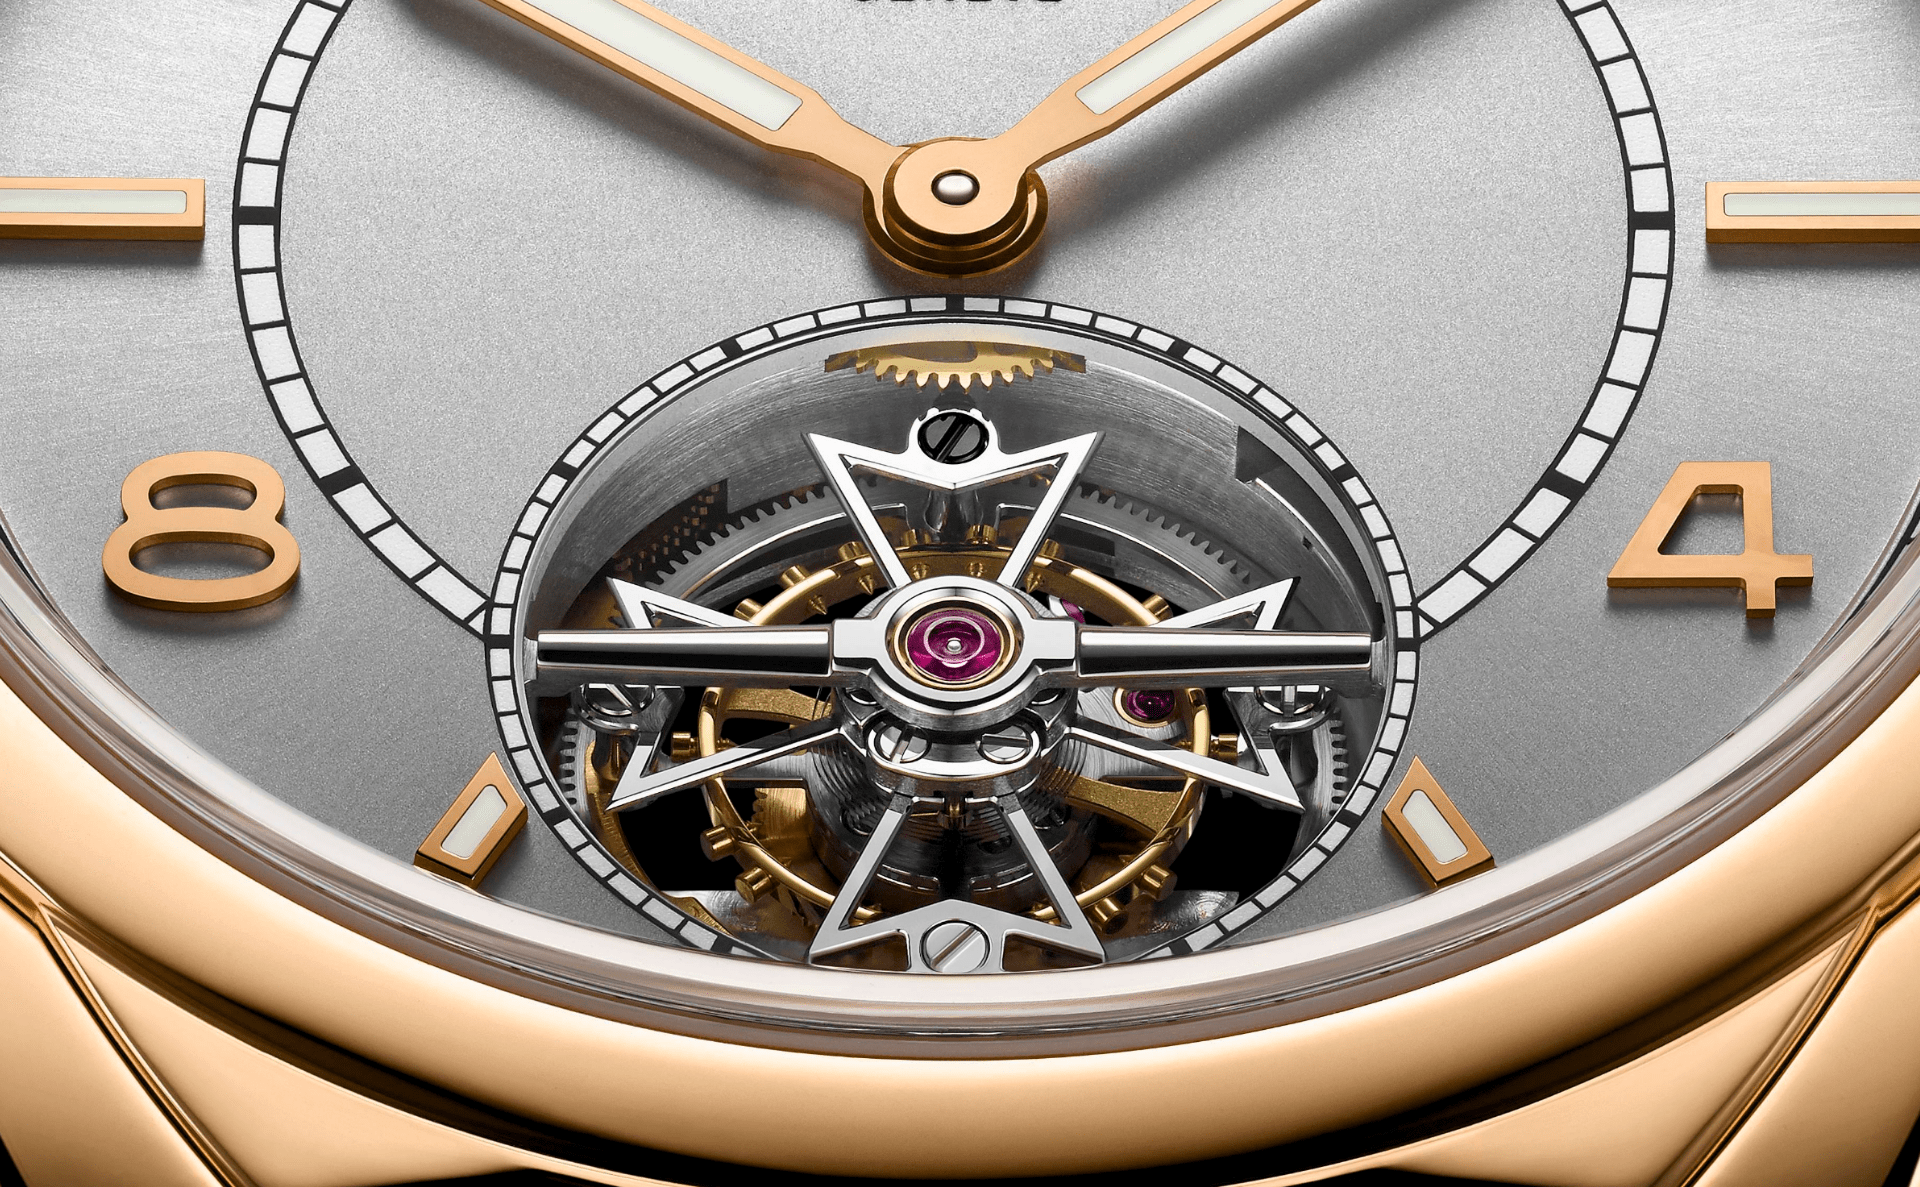 Photo: Vacheron Constantin